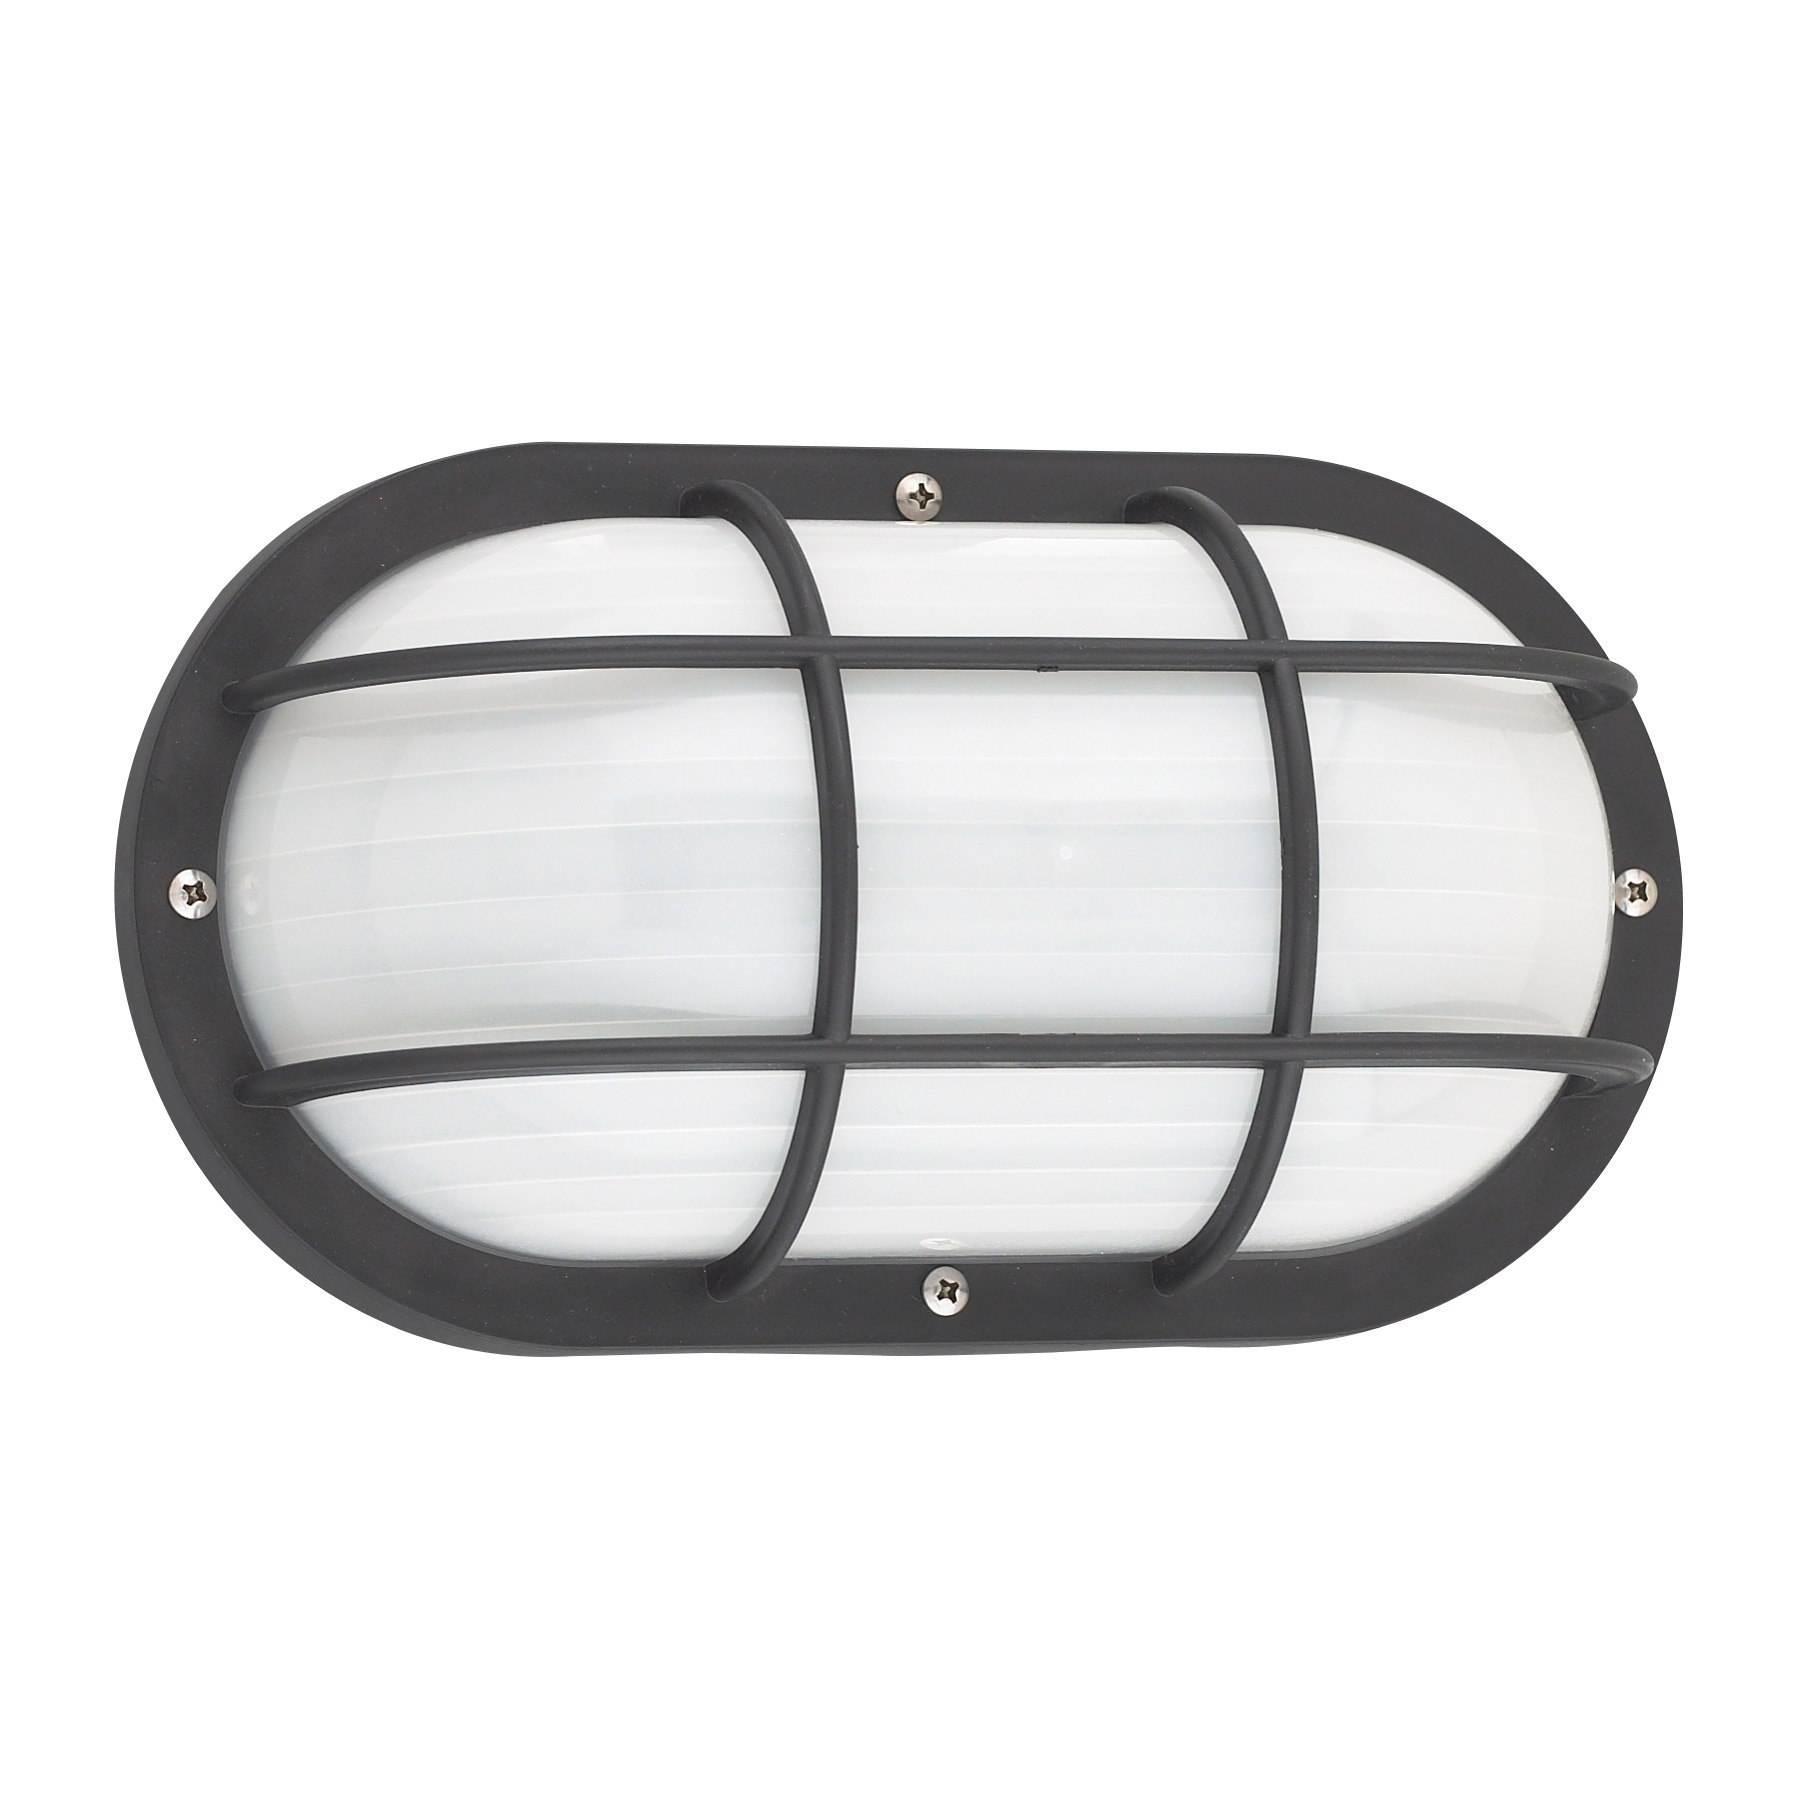 Bayside Oval Caged Wall Light By Sea